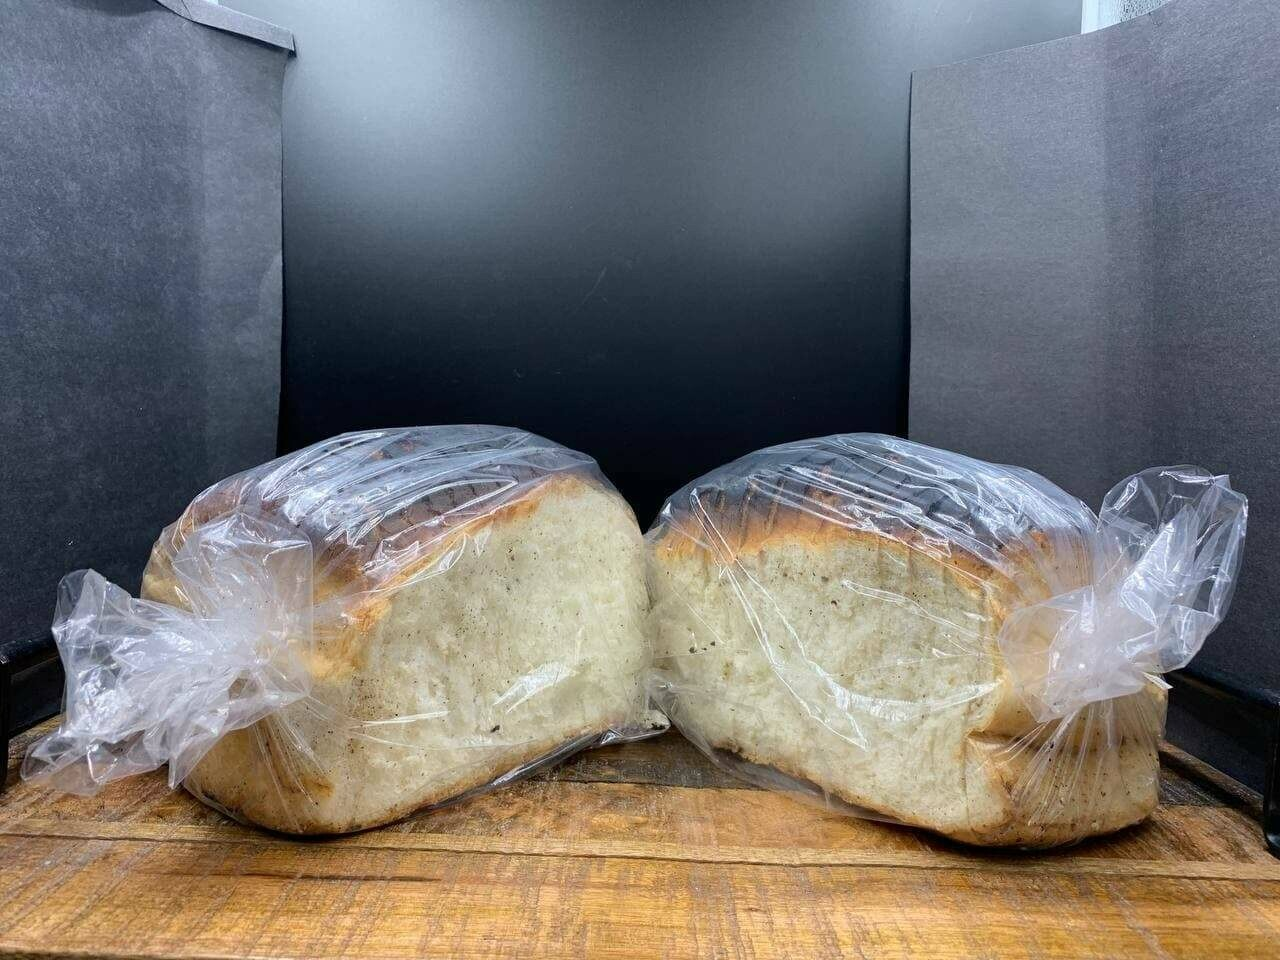 Well fired bread sliced